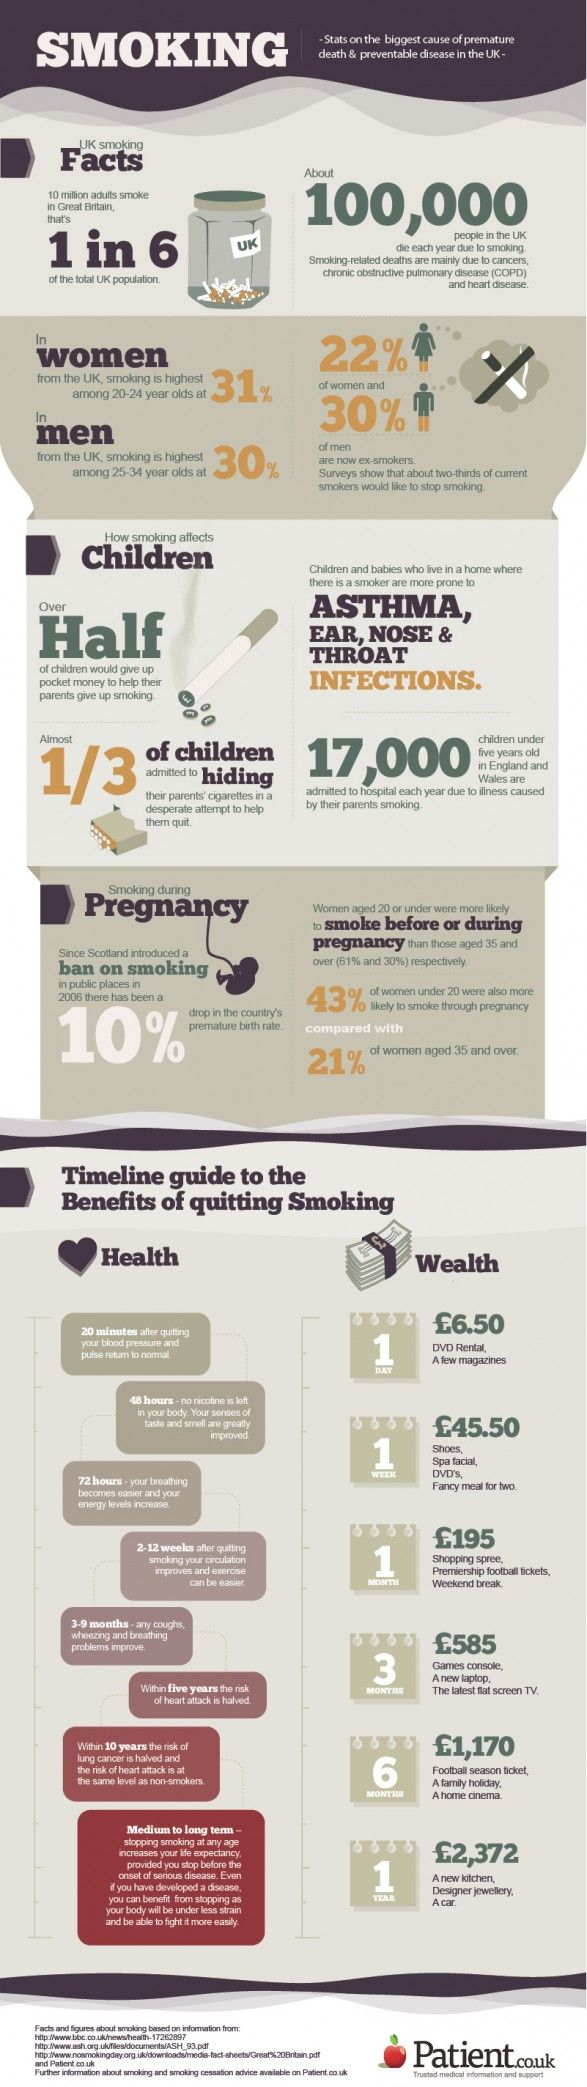 No Smoking Day - Quitting is good for health and your bank balance!! #betteroff #nosmokingday